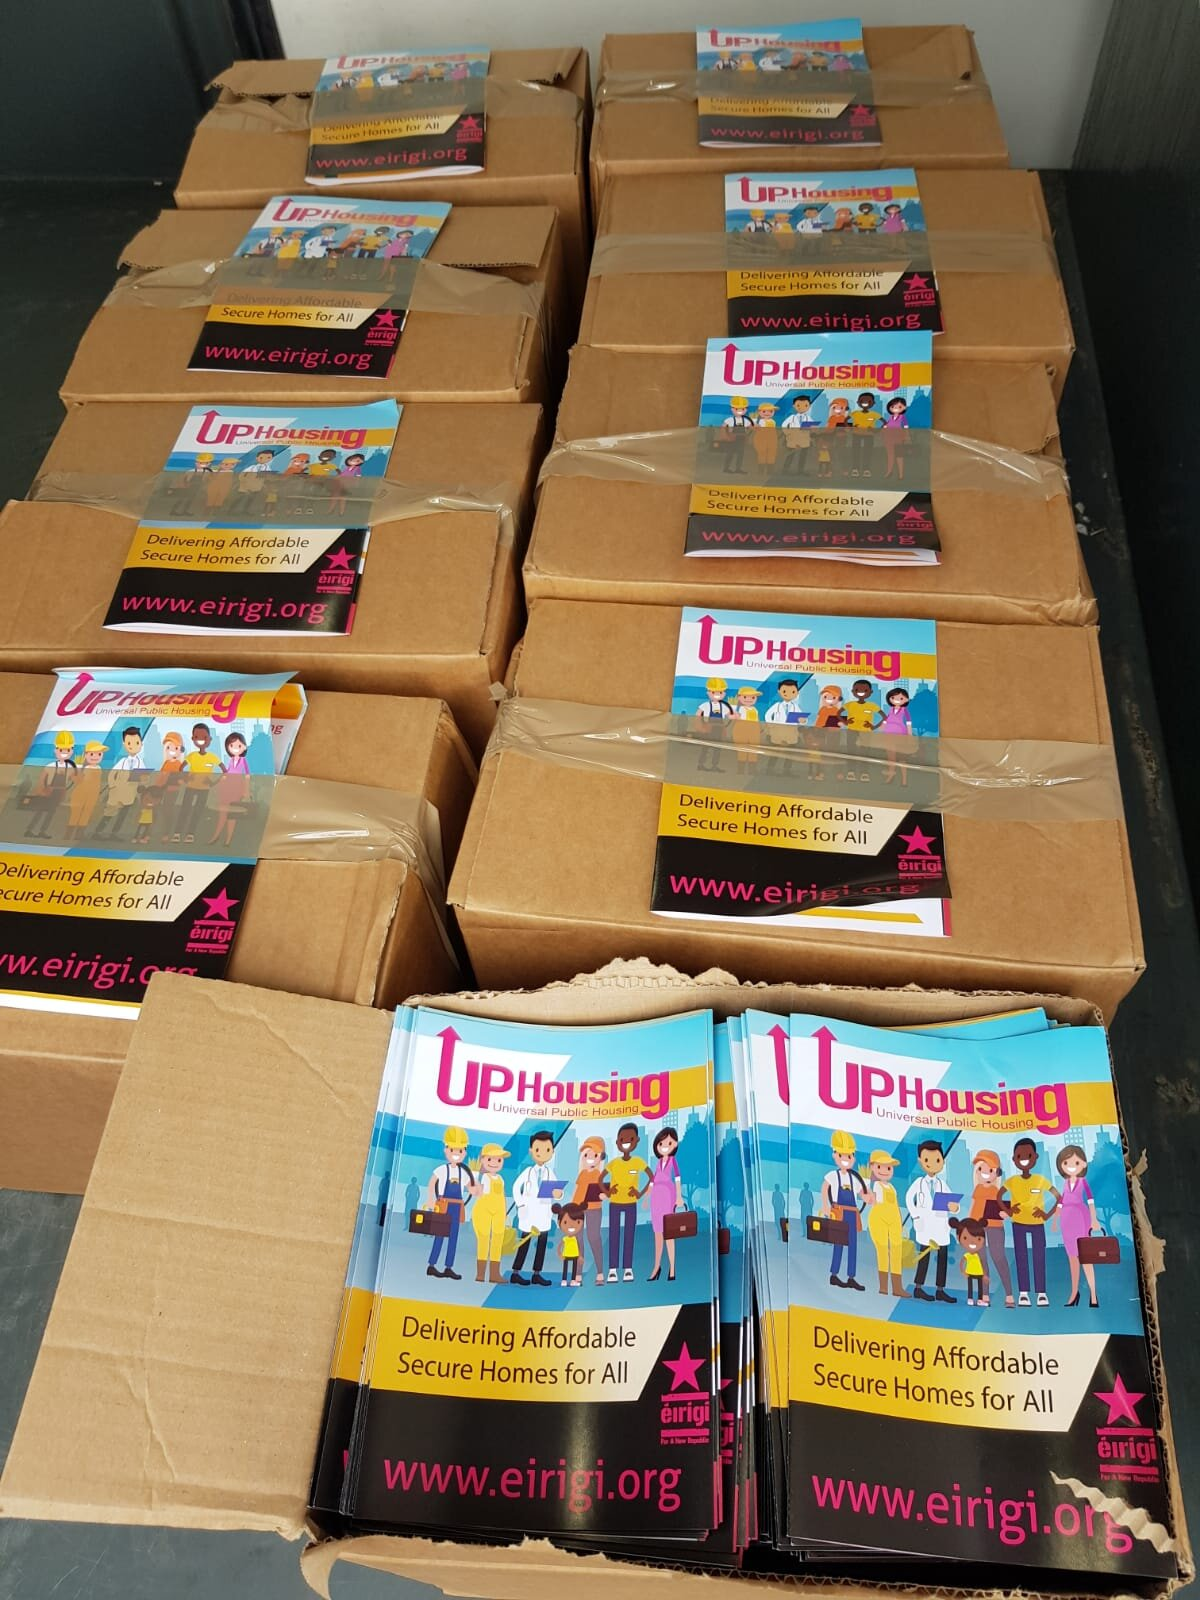 The first batch of 15,000 UP Housing leaflets arrived two weeks ago.